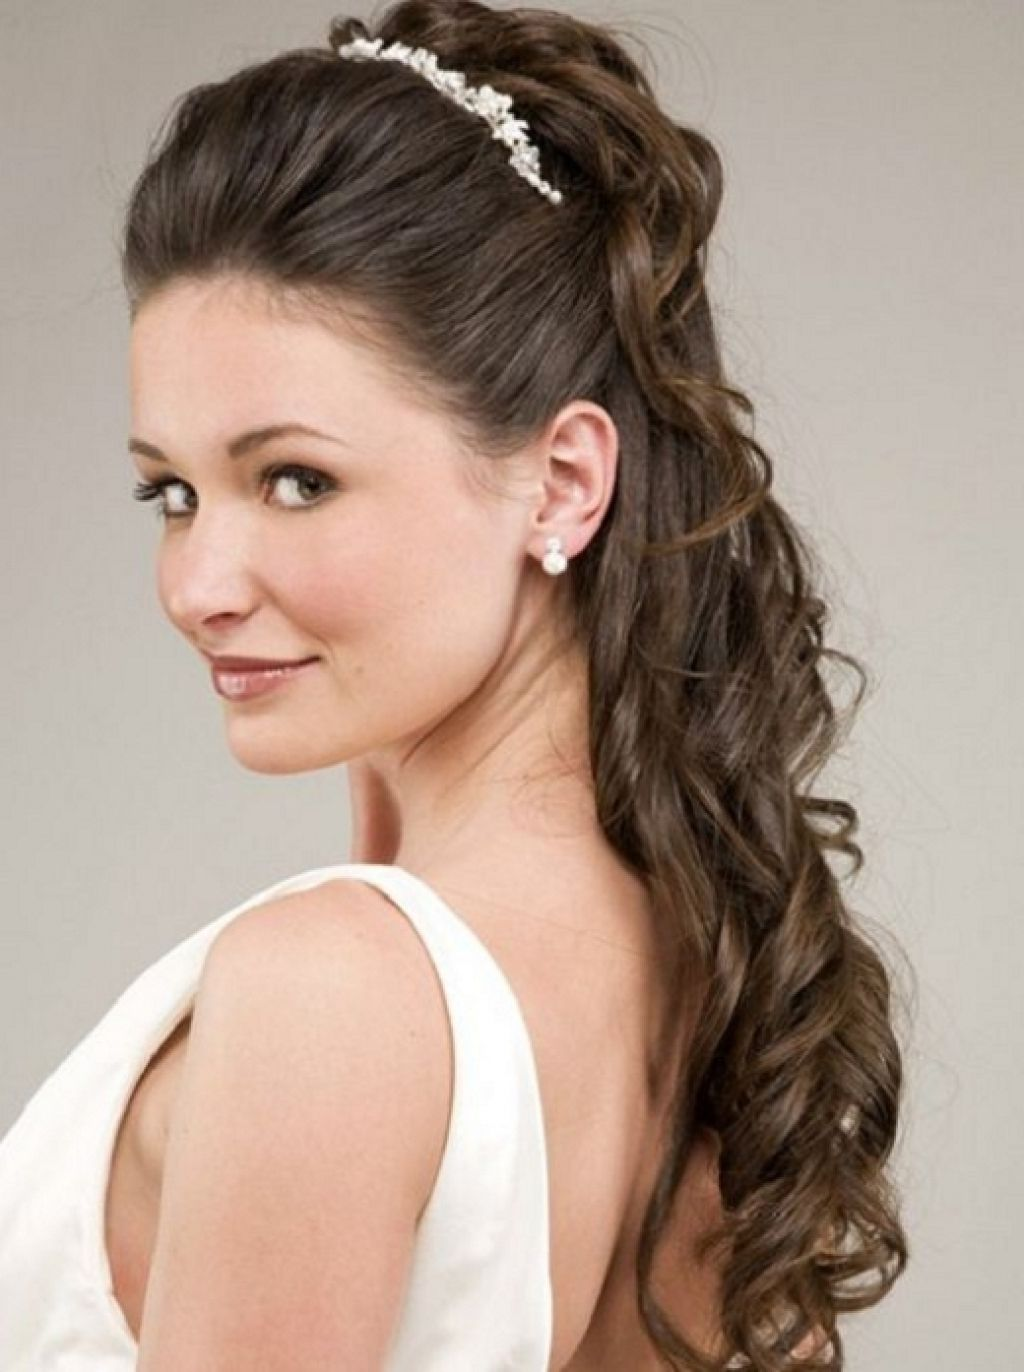 20 Gorgeous Wedding Hairstyles For Long Hair: 20 Beautiful Wedding Hairstyles For Long Hair